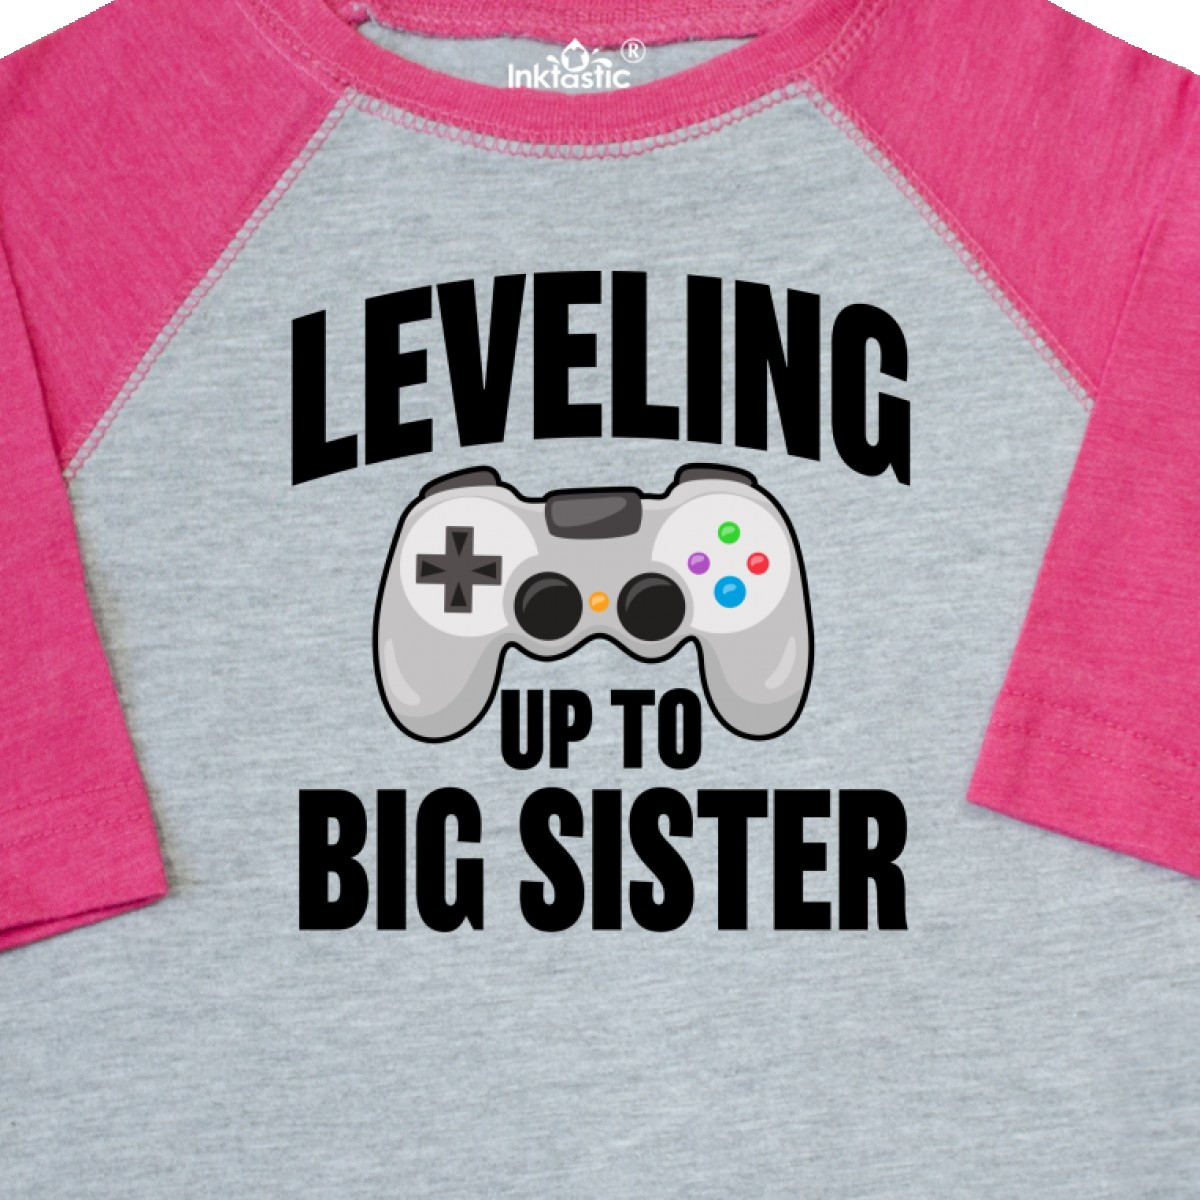 Inktastic Leveling Up To Big Sister Toddler T-Shirt Family Sis Announcement Gift